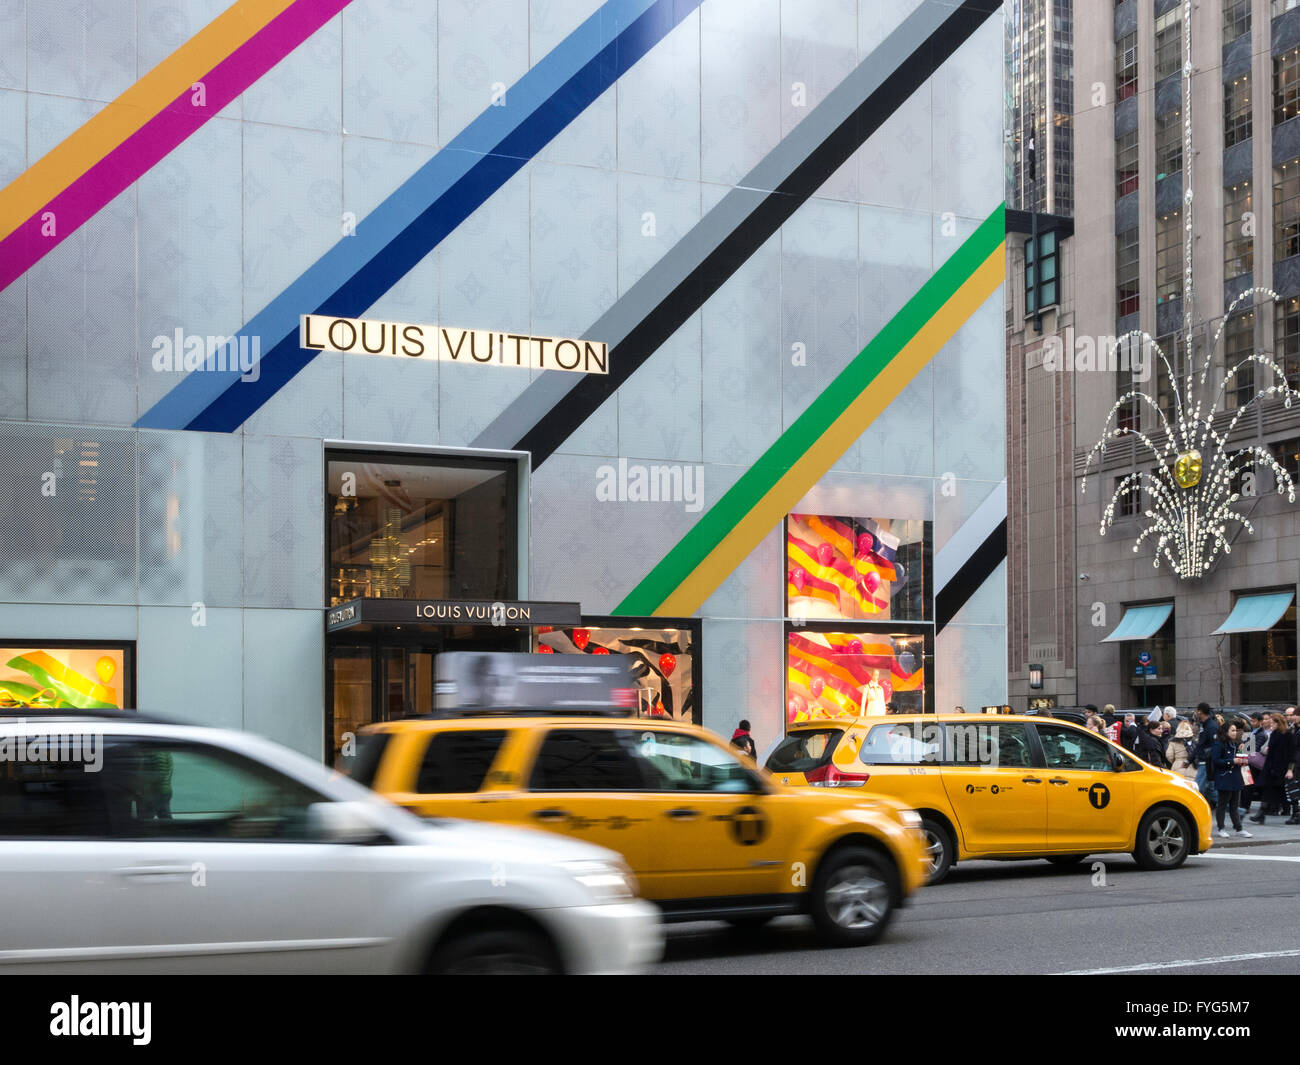 Louis Vuitton Store Facade With Holiday Decorations Nyc Stock Photo